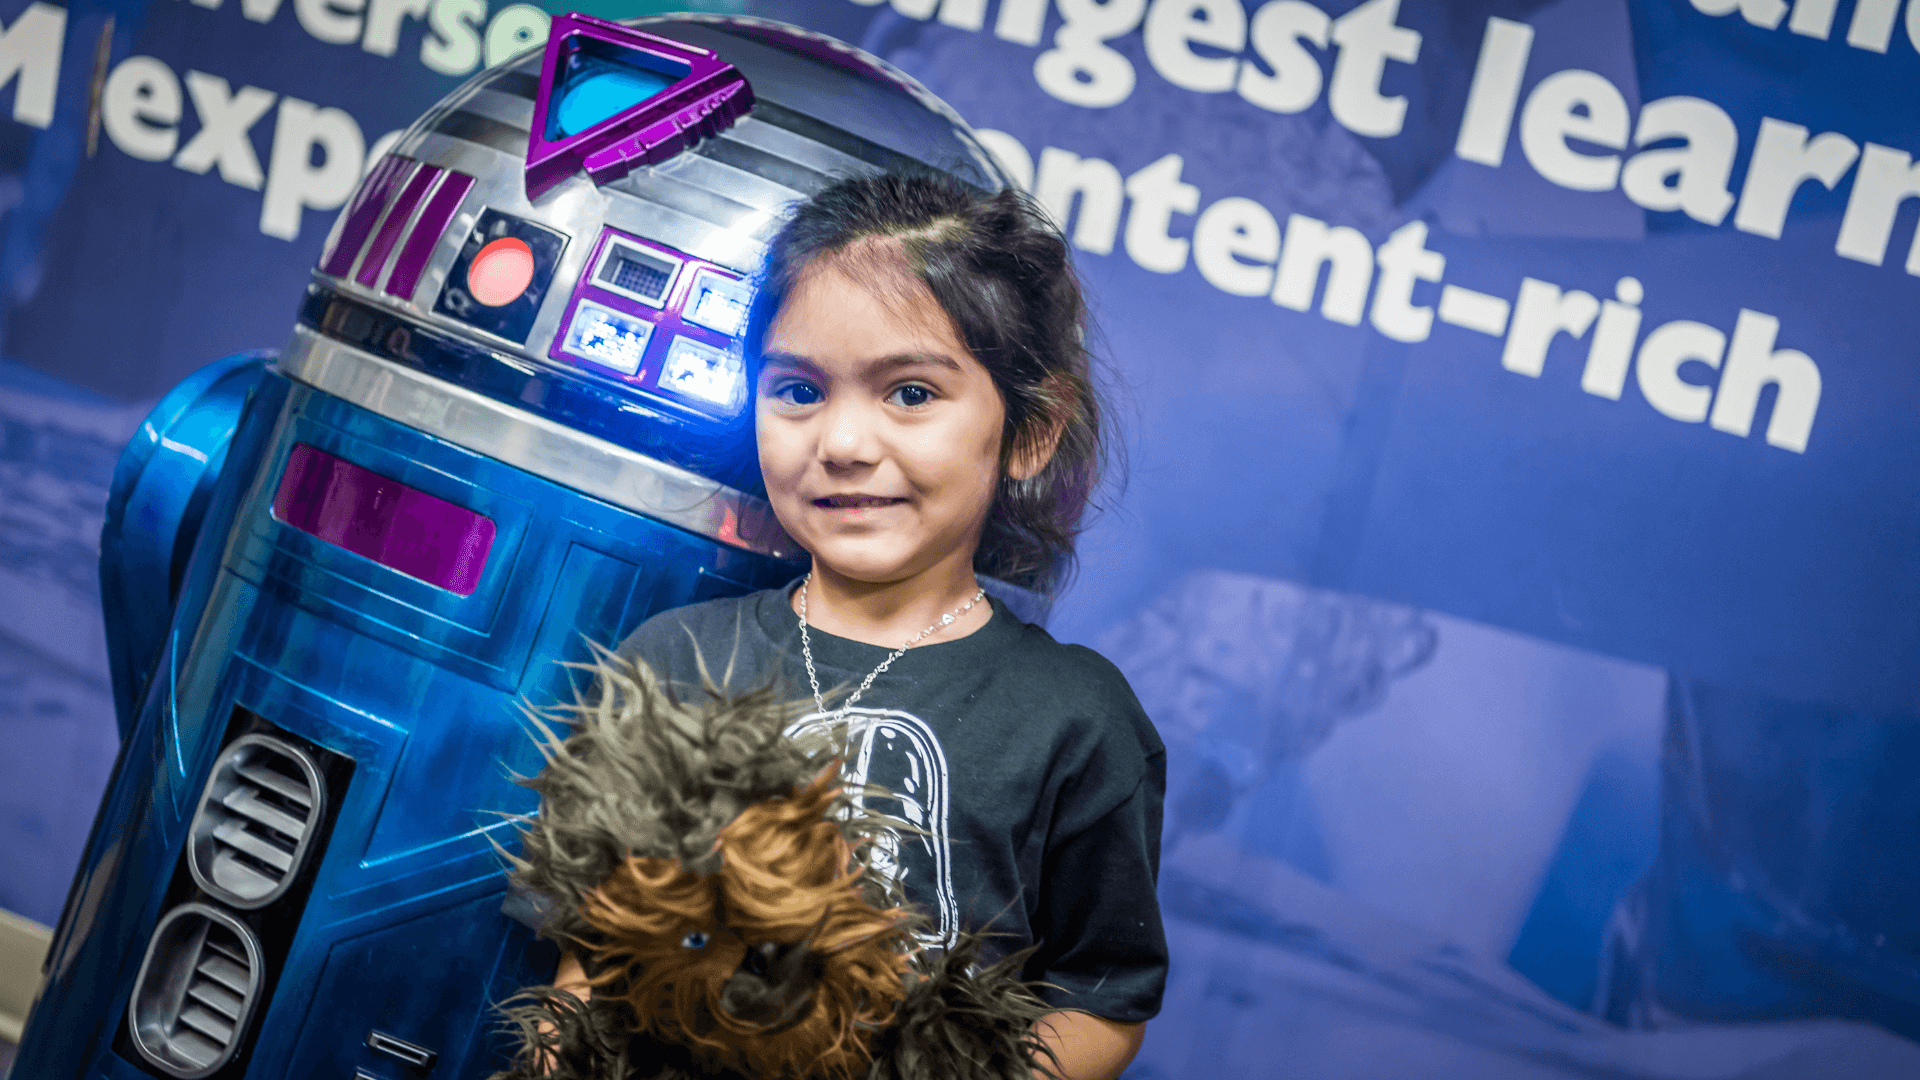 Girl holding a Chewbacca toy standing next to a droid